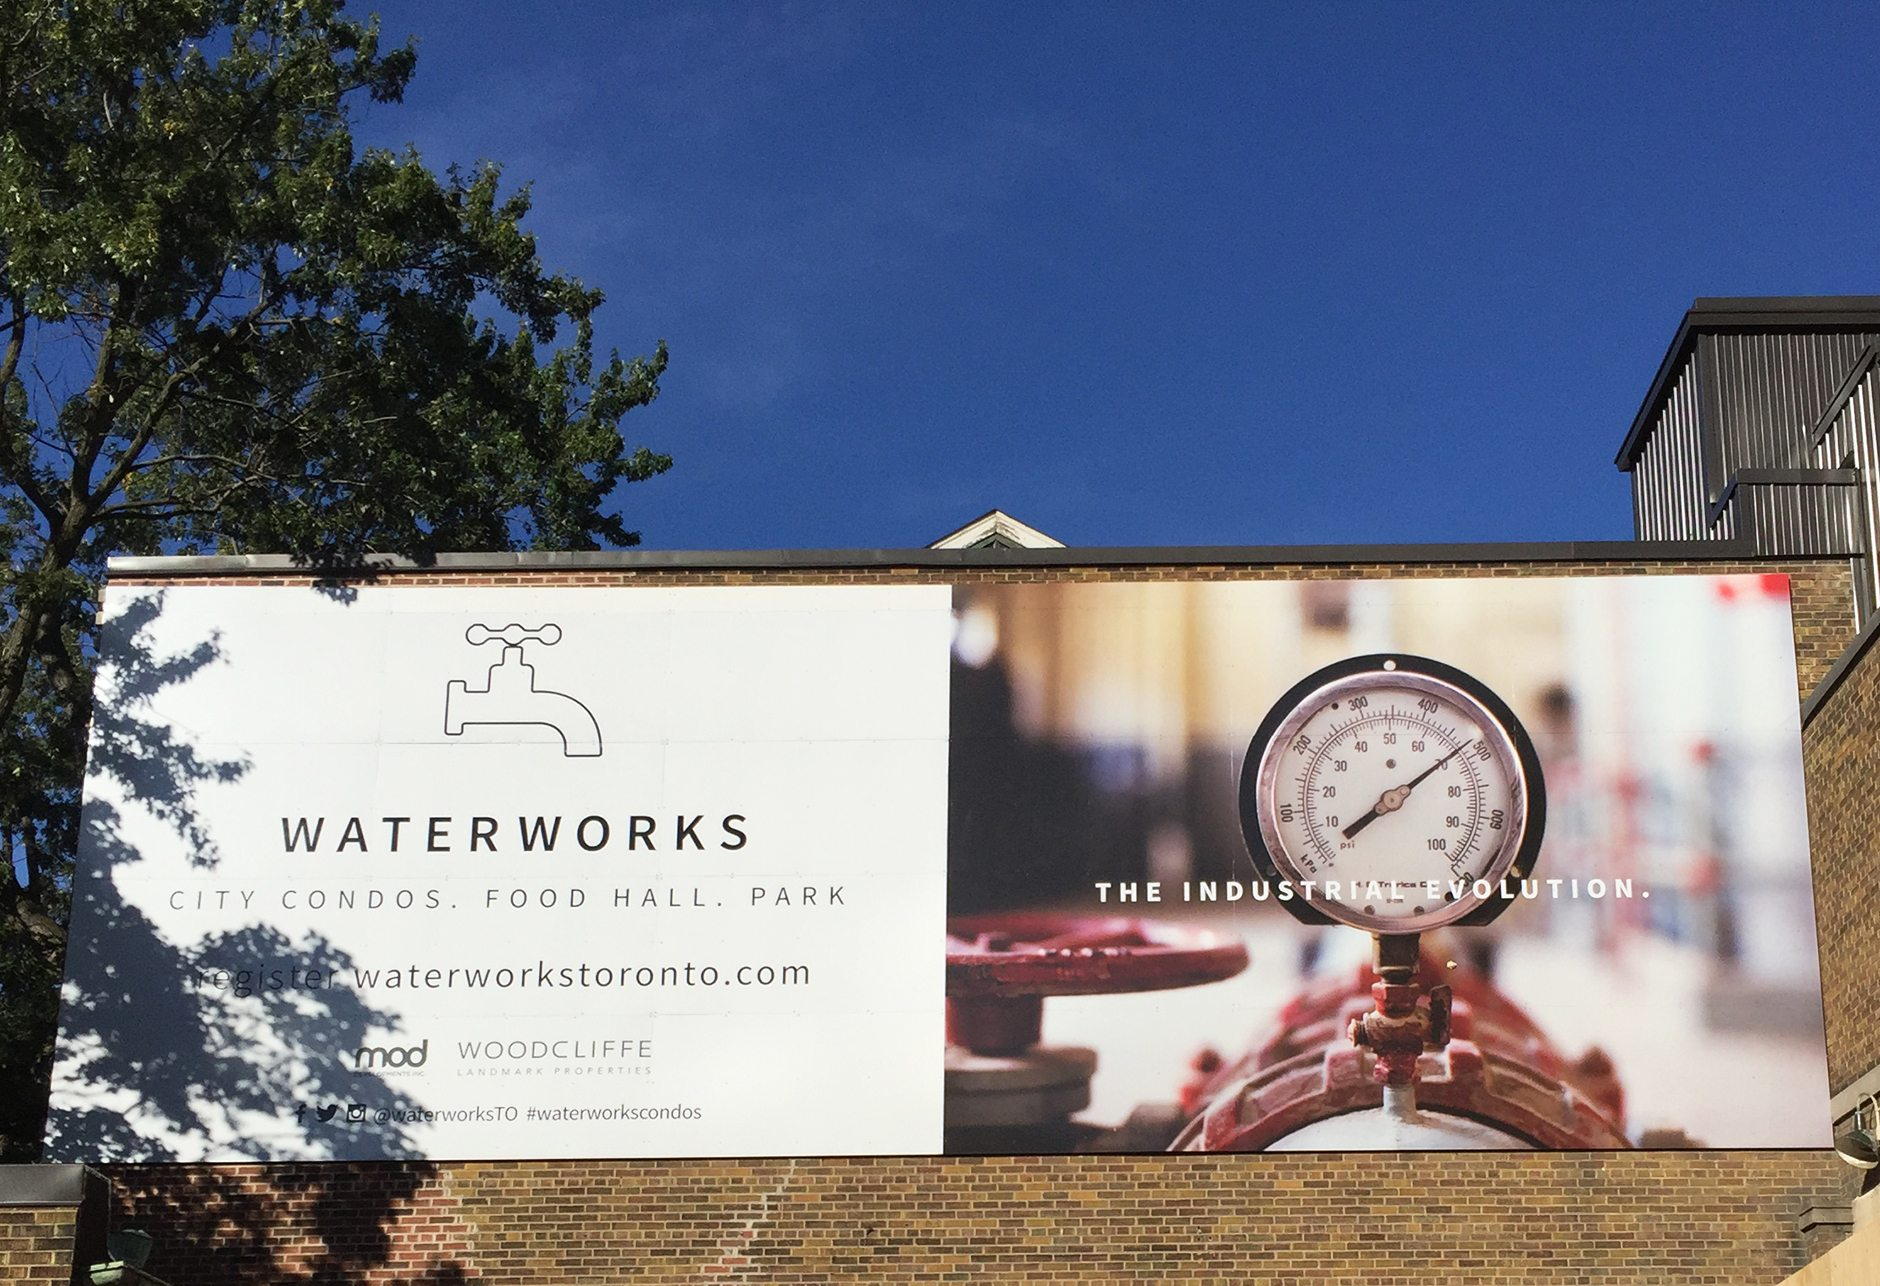 waterworks_camden-sign_1880x1286